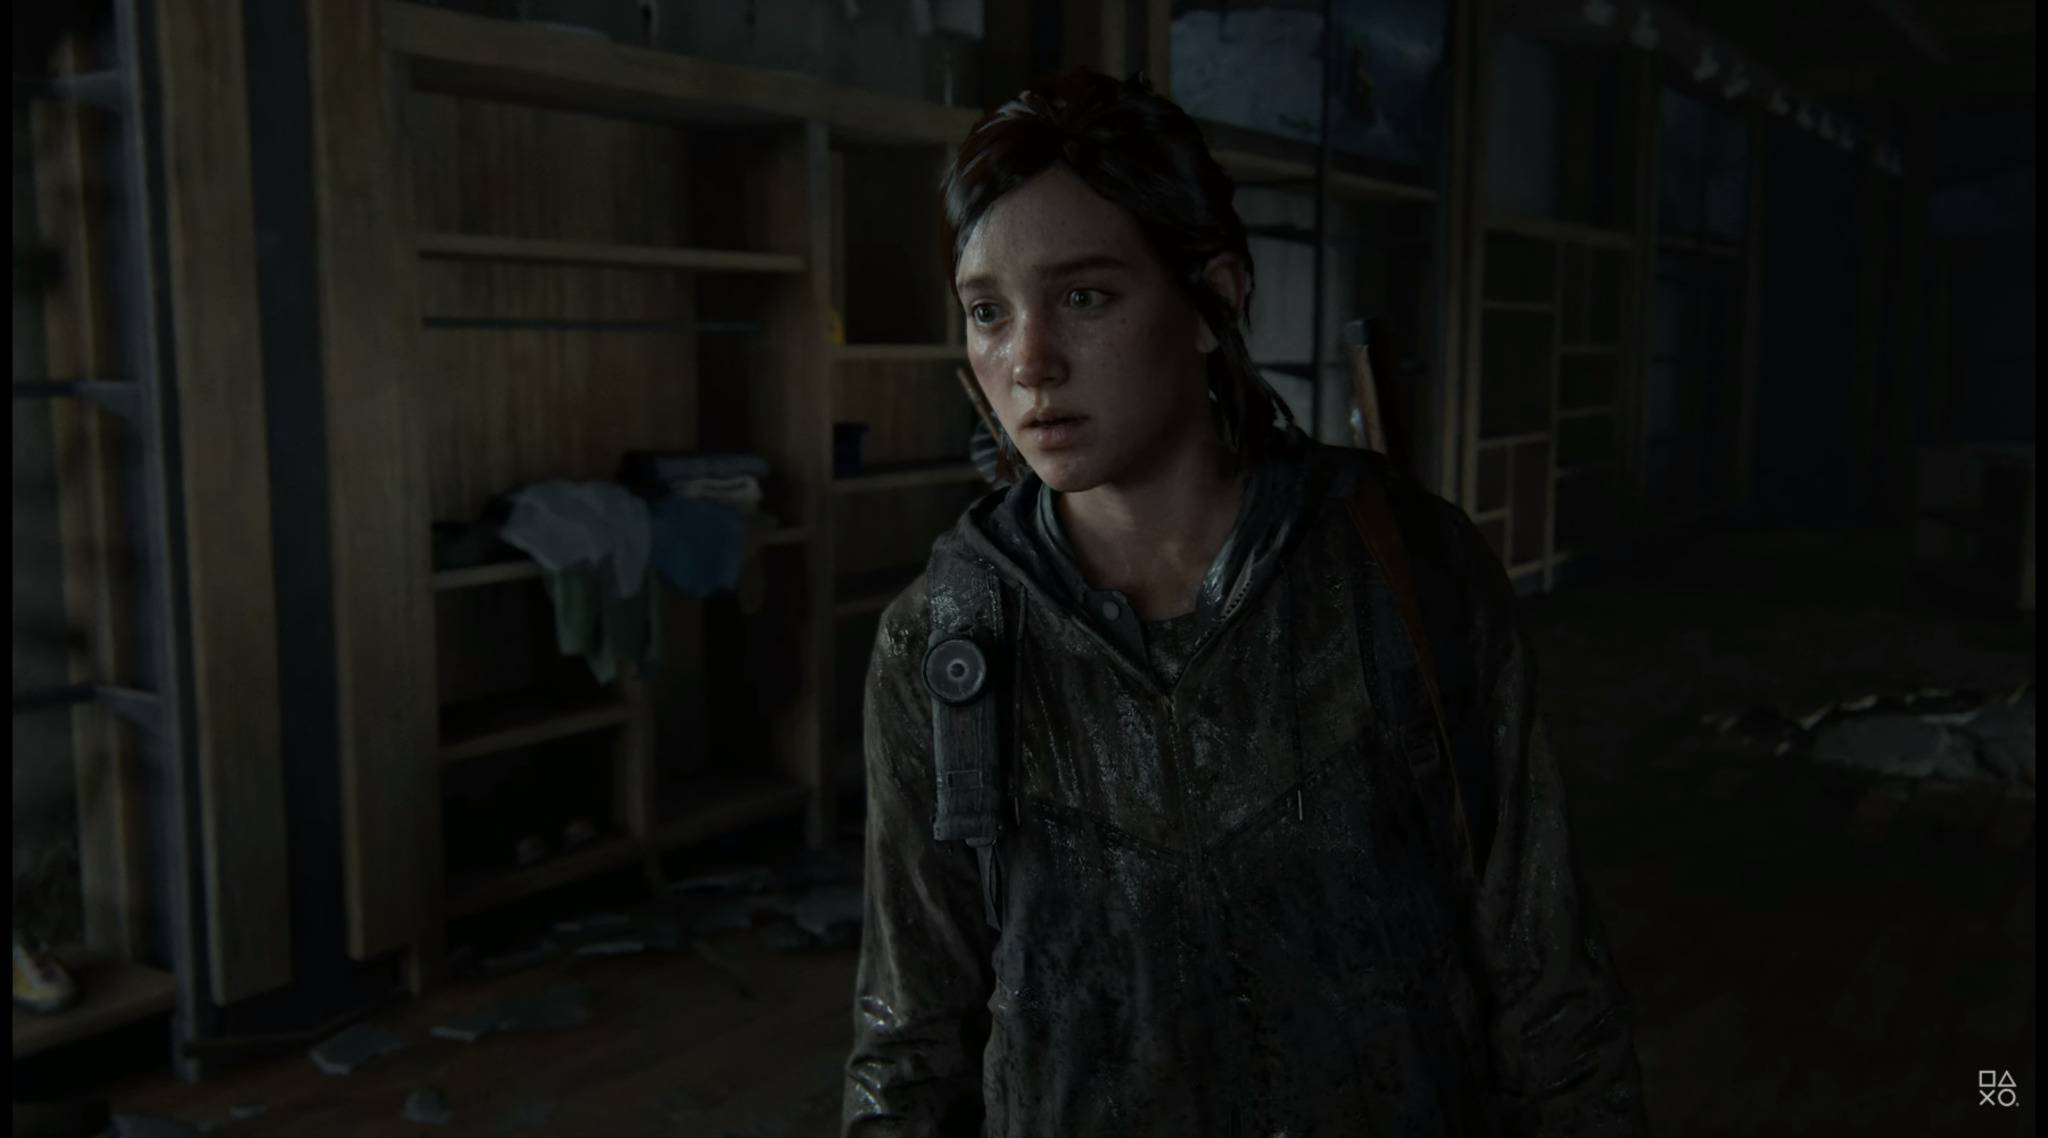 the-last-of-us-2-ellie-story-trailer